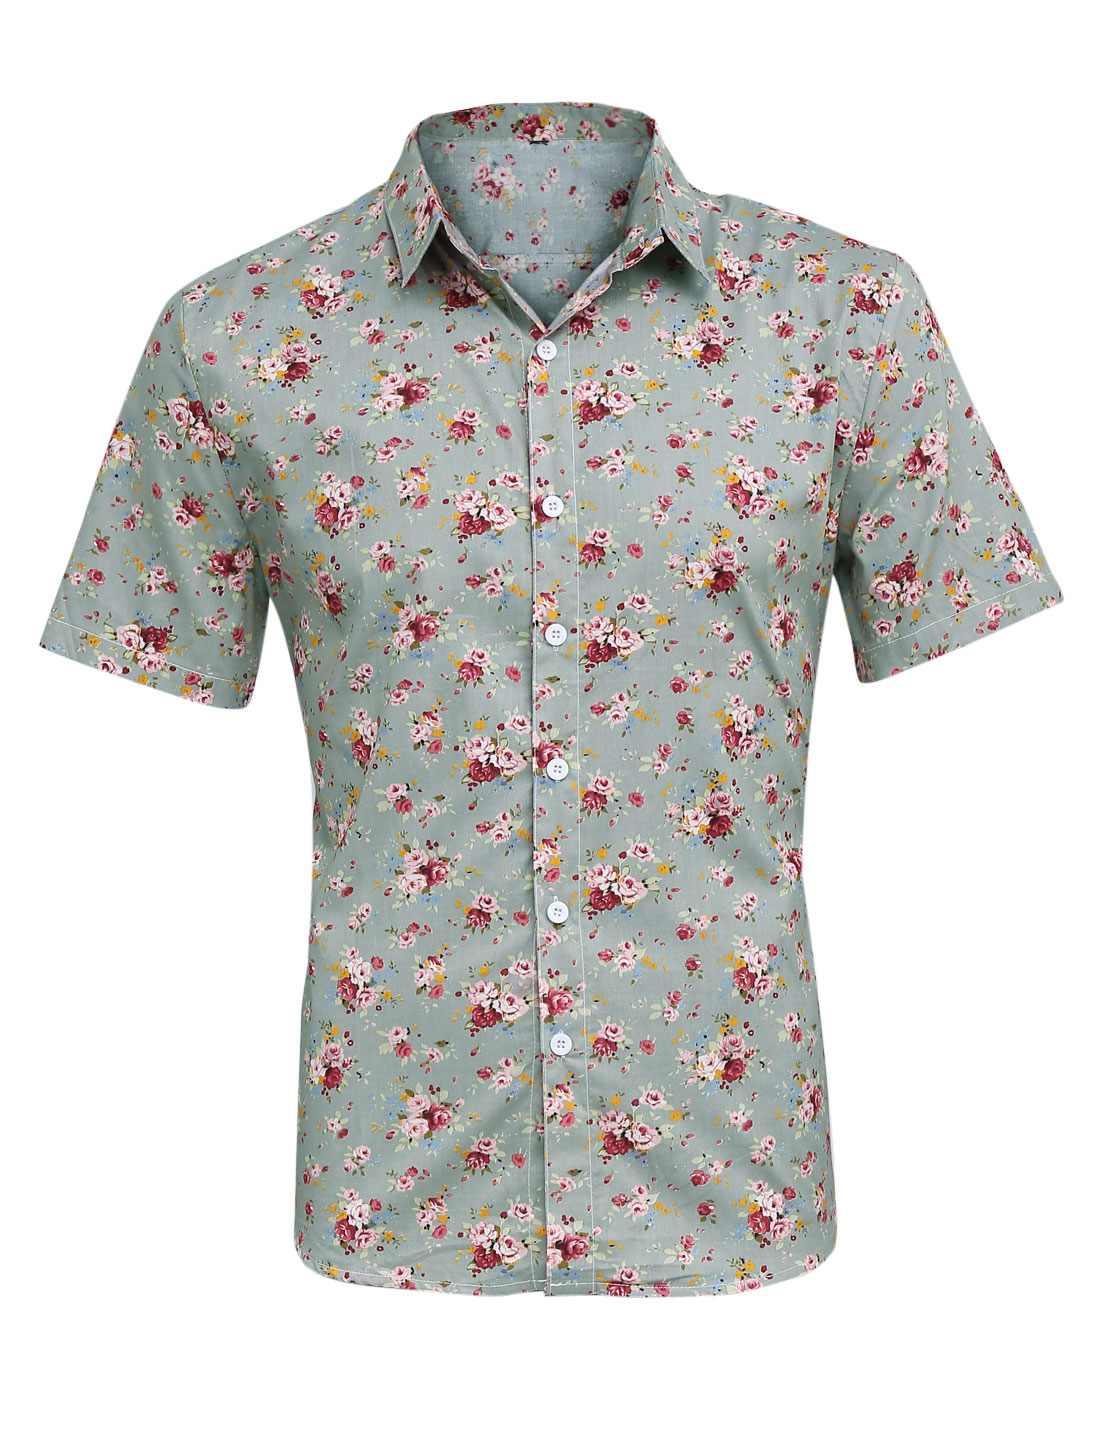 Men Point Collar Button Front Floral Prints Shirt Warm Gray M